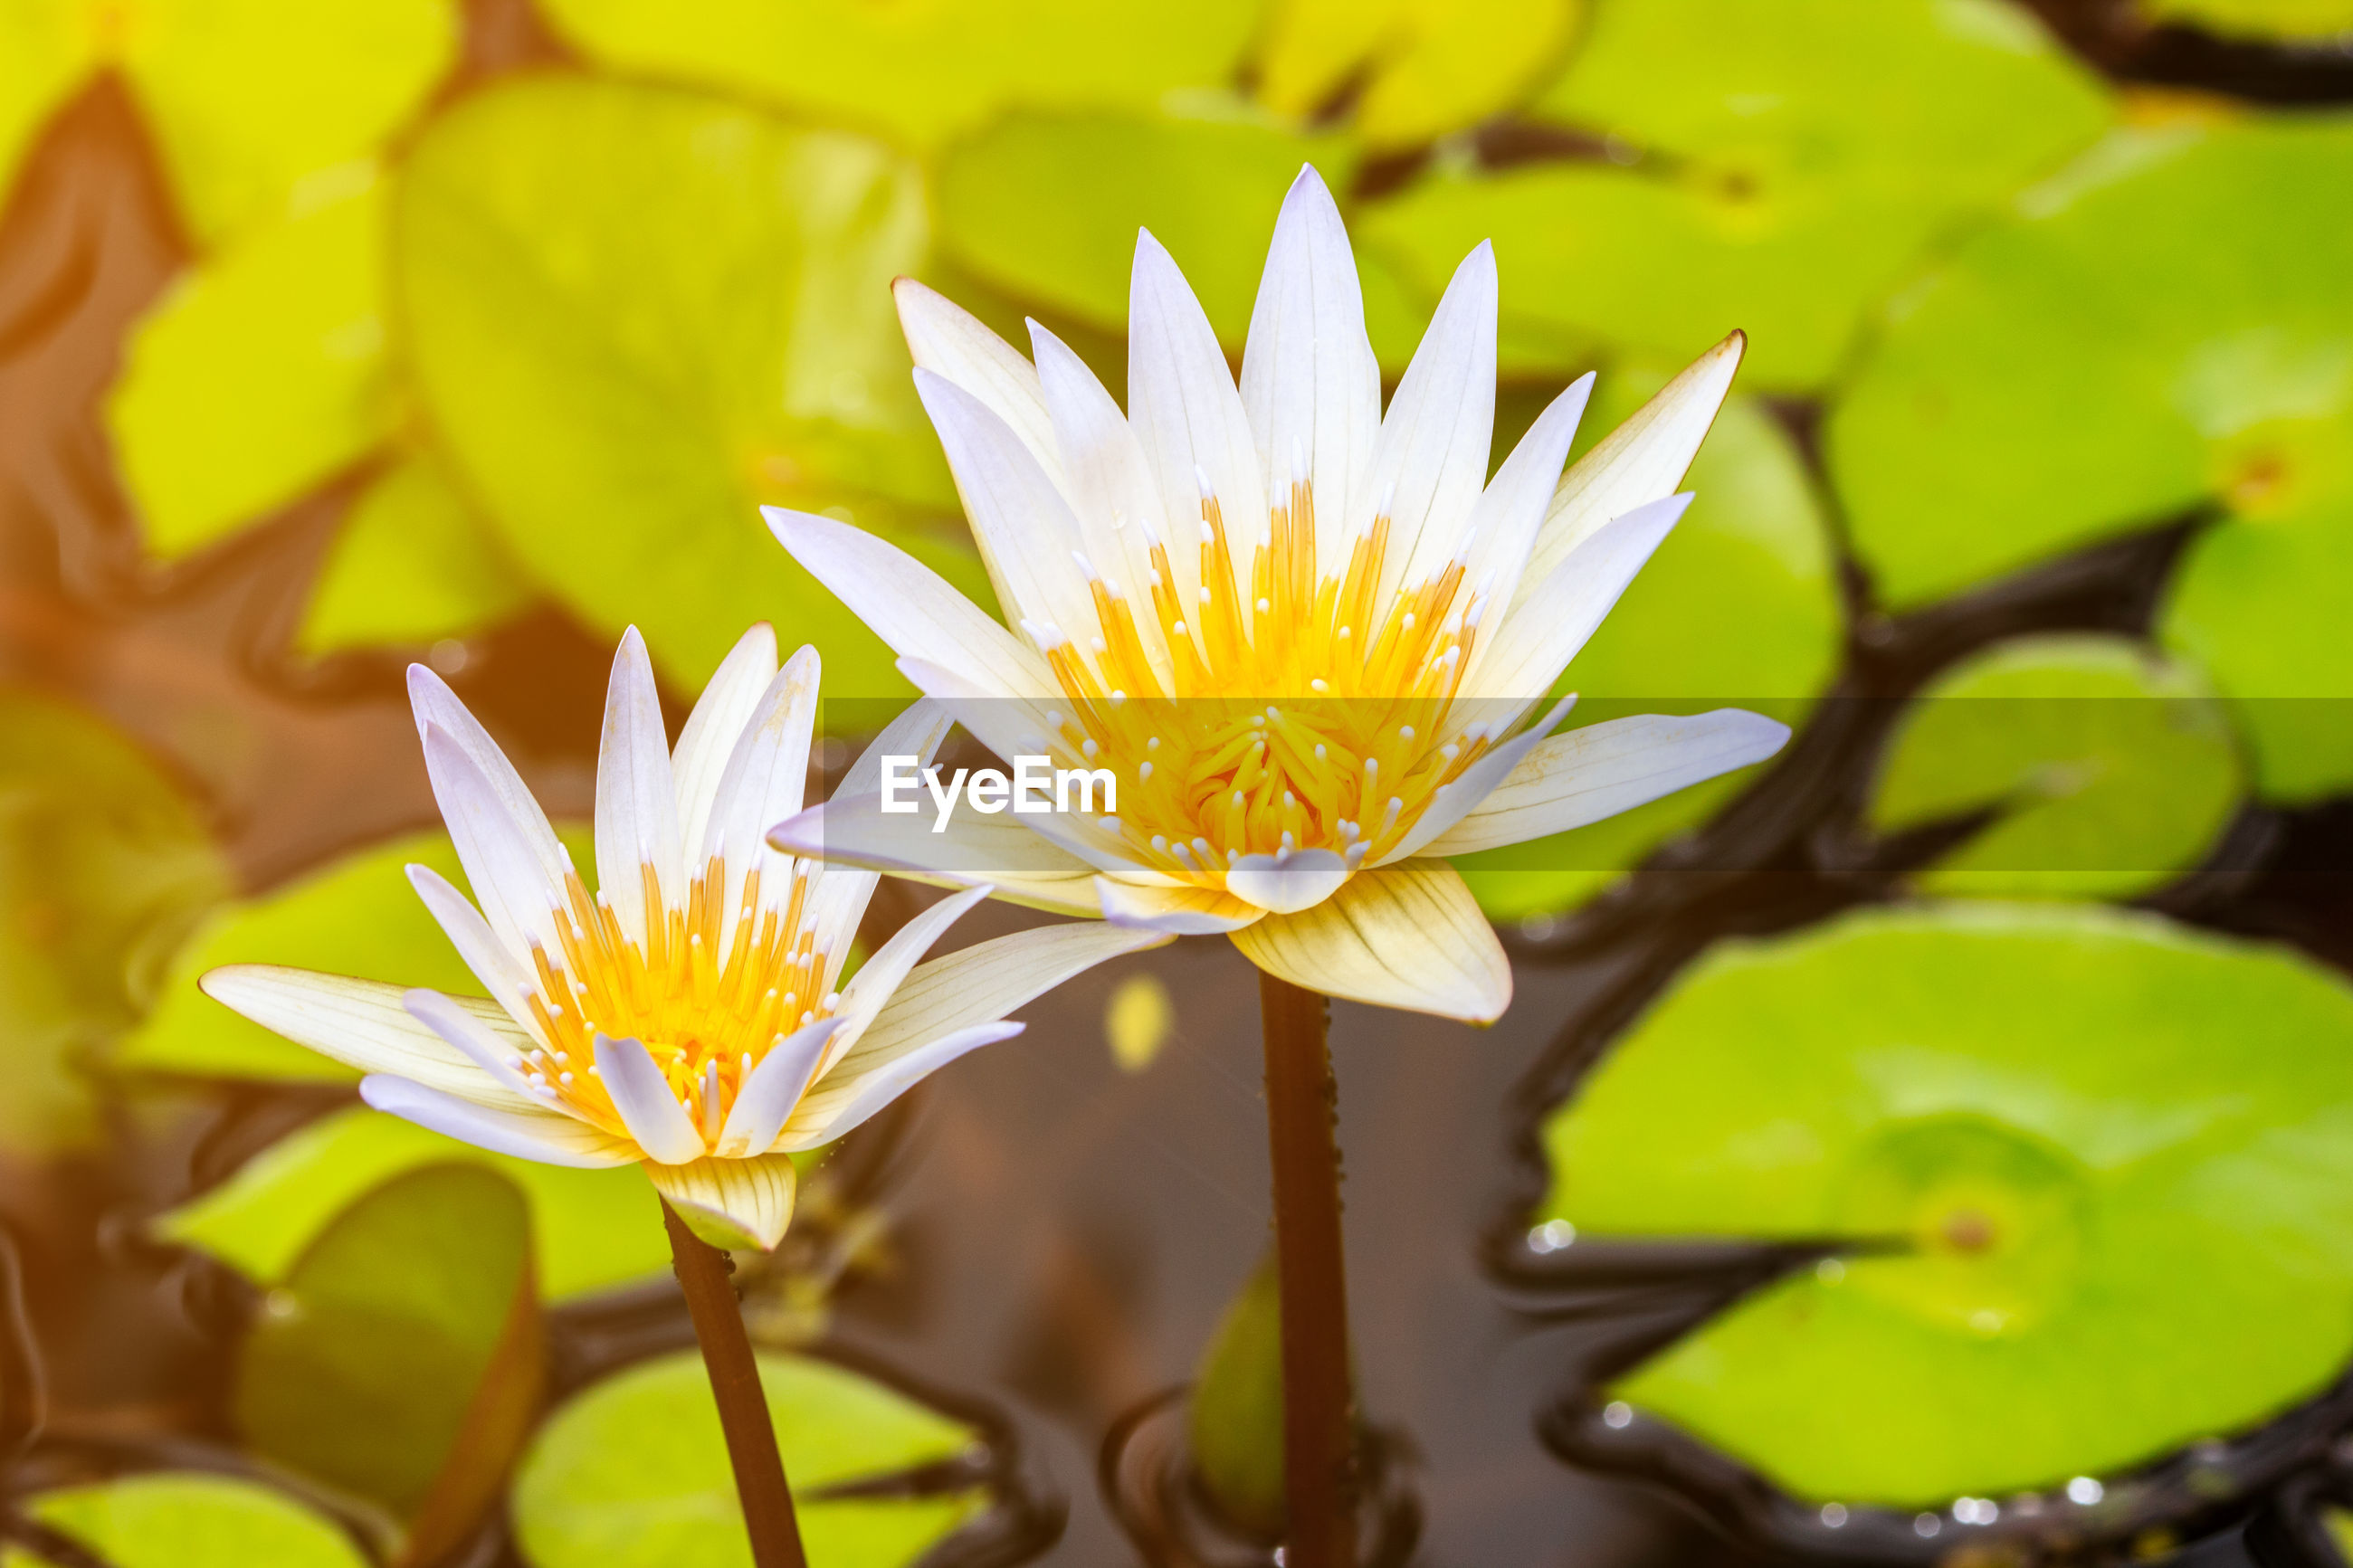 CLOSE-UP OF WATER LILY BLOOMING IN GARDEN